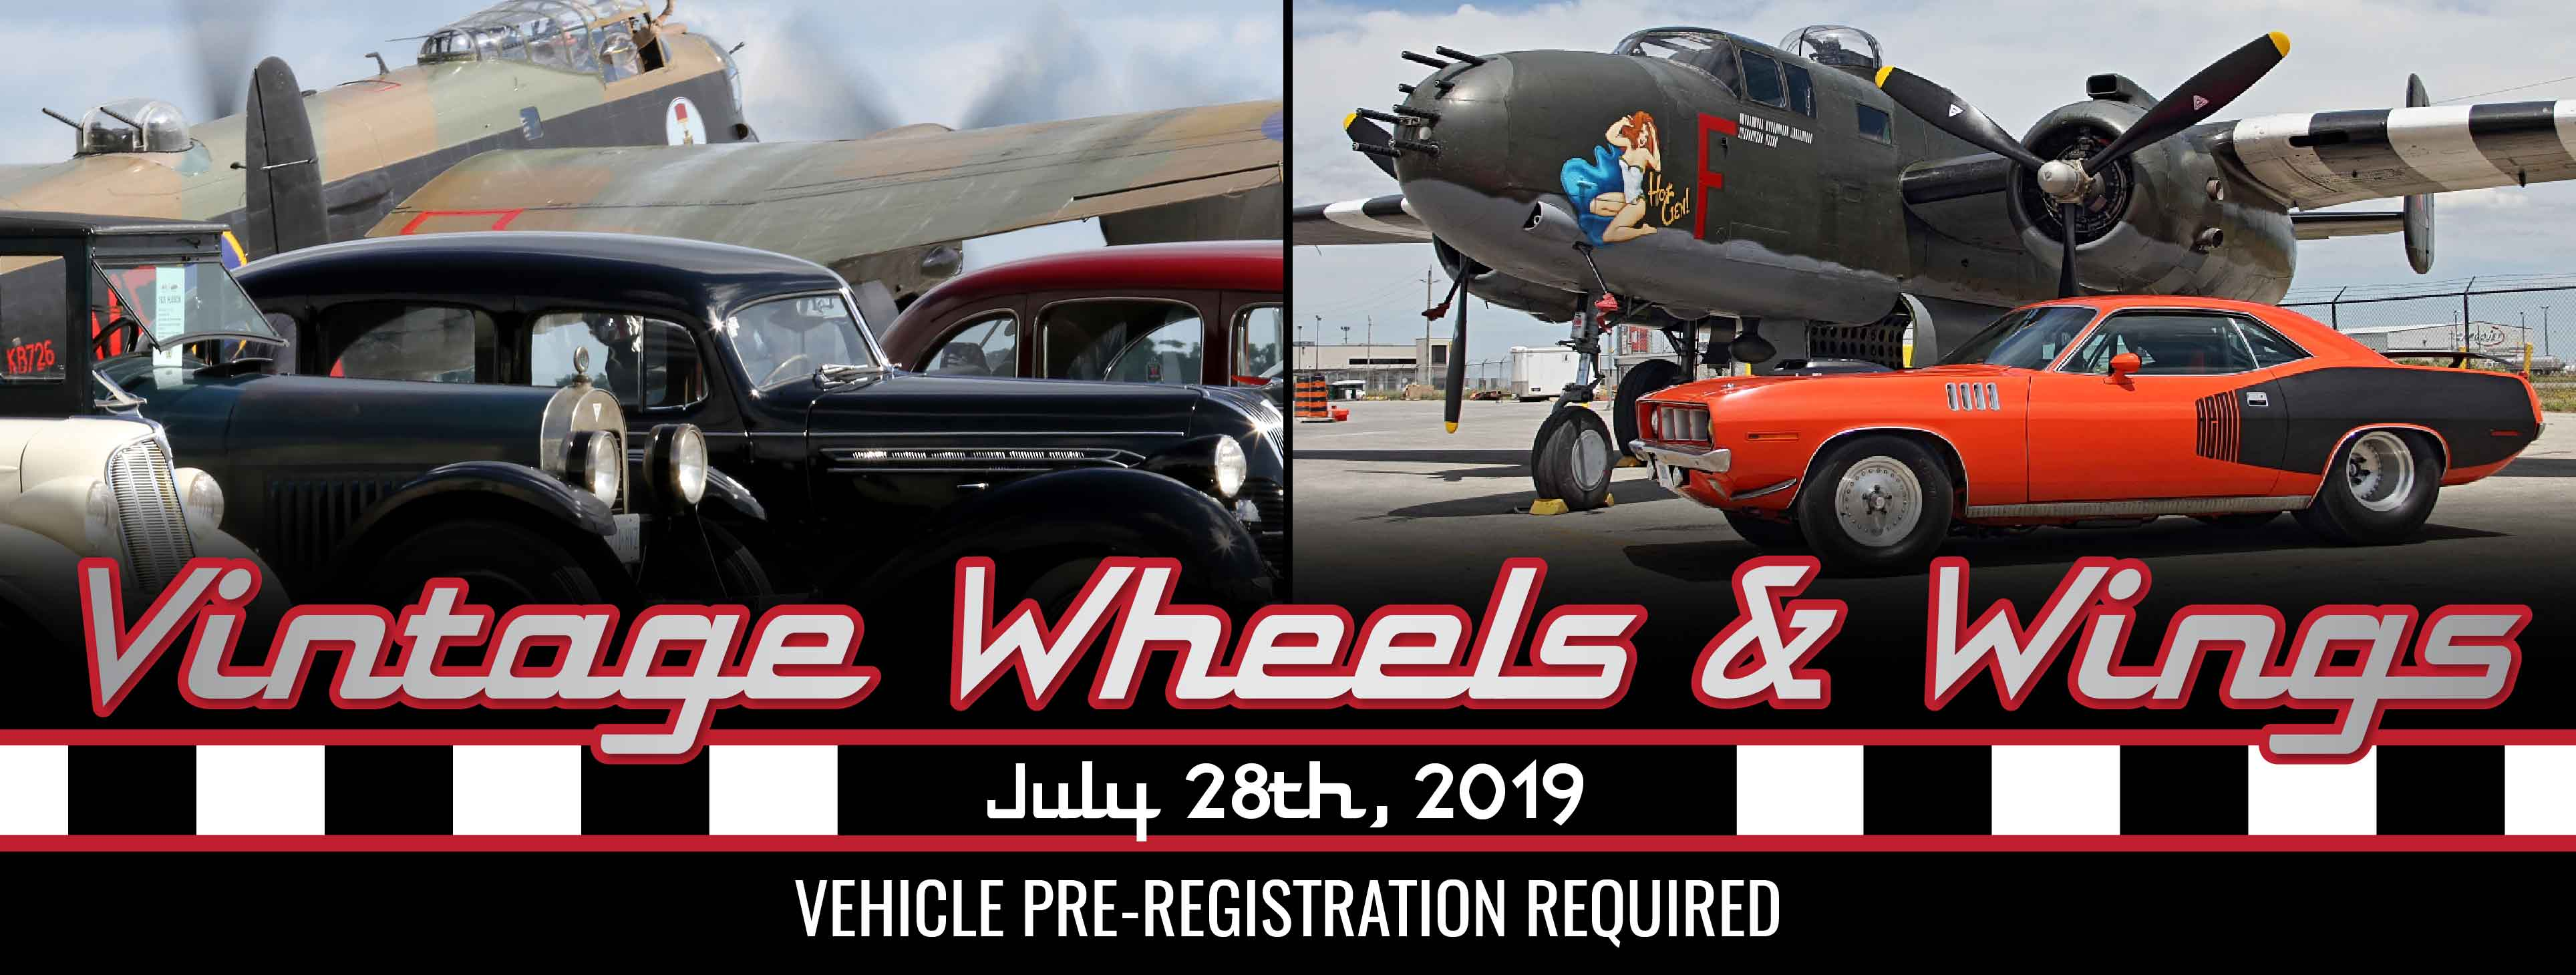 Poster for - Vintage Wheels & Wings